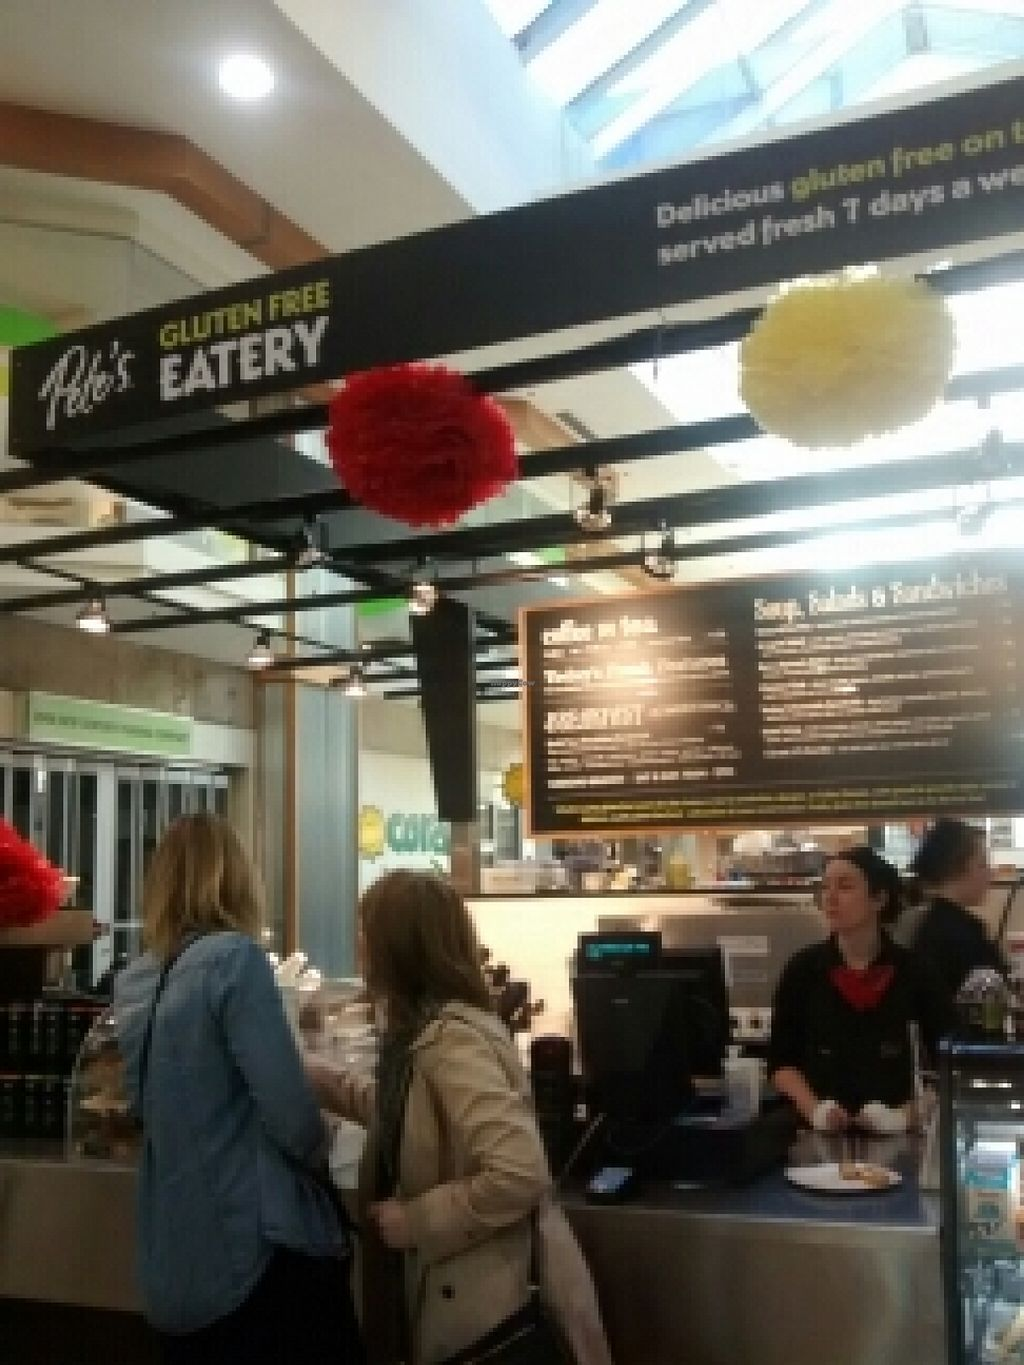 """Photo of Pete's Gluten Free Eatery and Espresso Bar  by <a href=""""/members/profile/QuothTheRaven"""">QuothTheRaven</a> <br/>cafe <br/> April 22, 2016  - <a href='/contact/abuse/image/33857/145770'>Report</a>"""